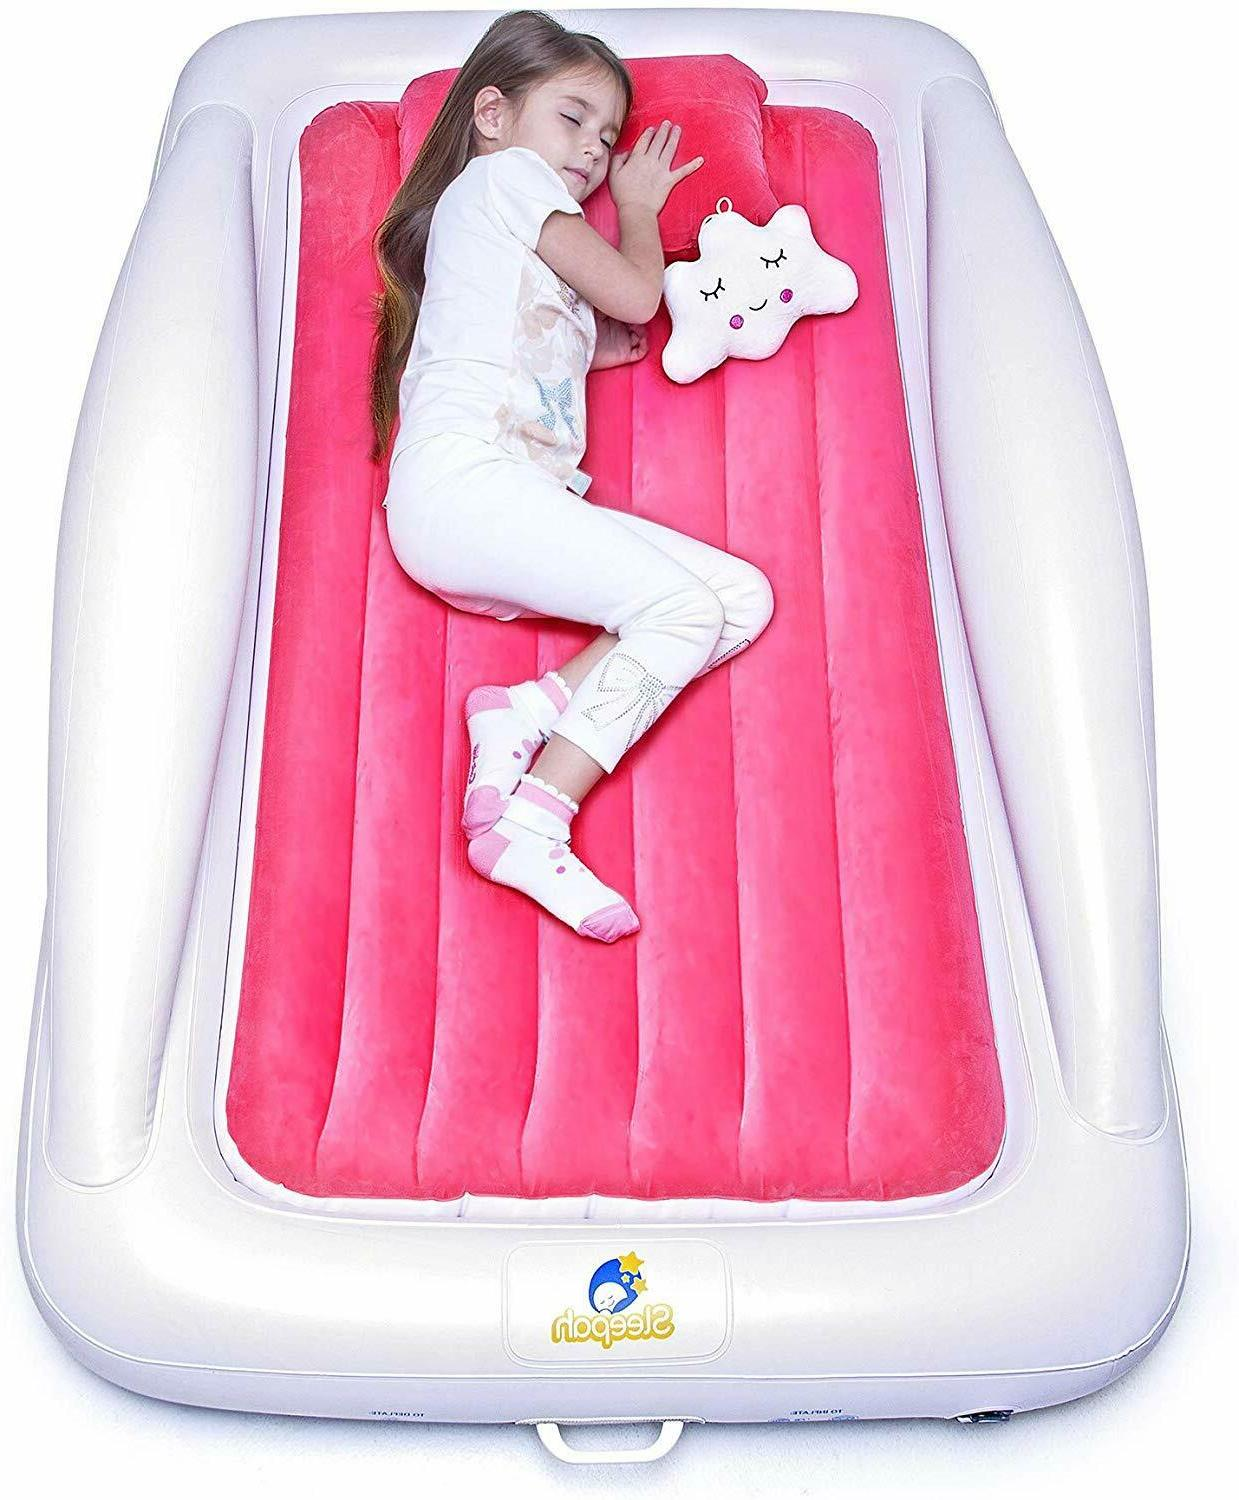 Sleepah Inflatable Bed – Air for Kids